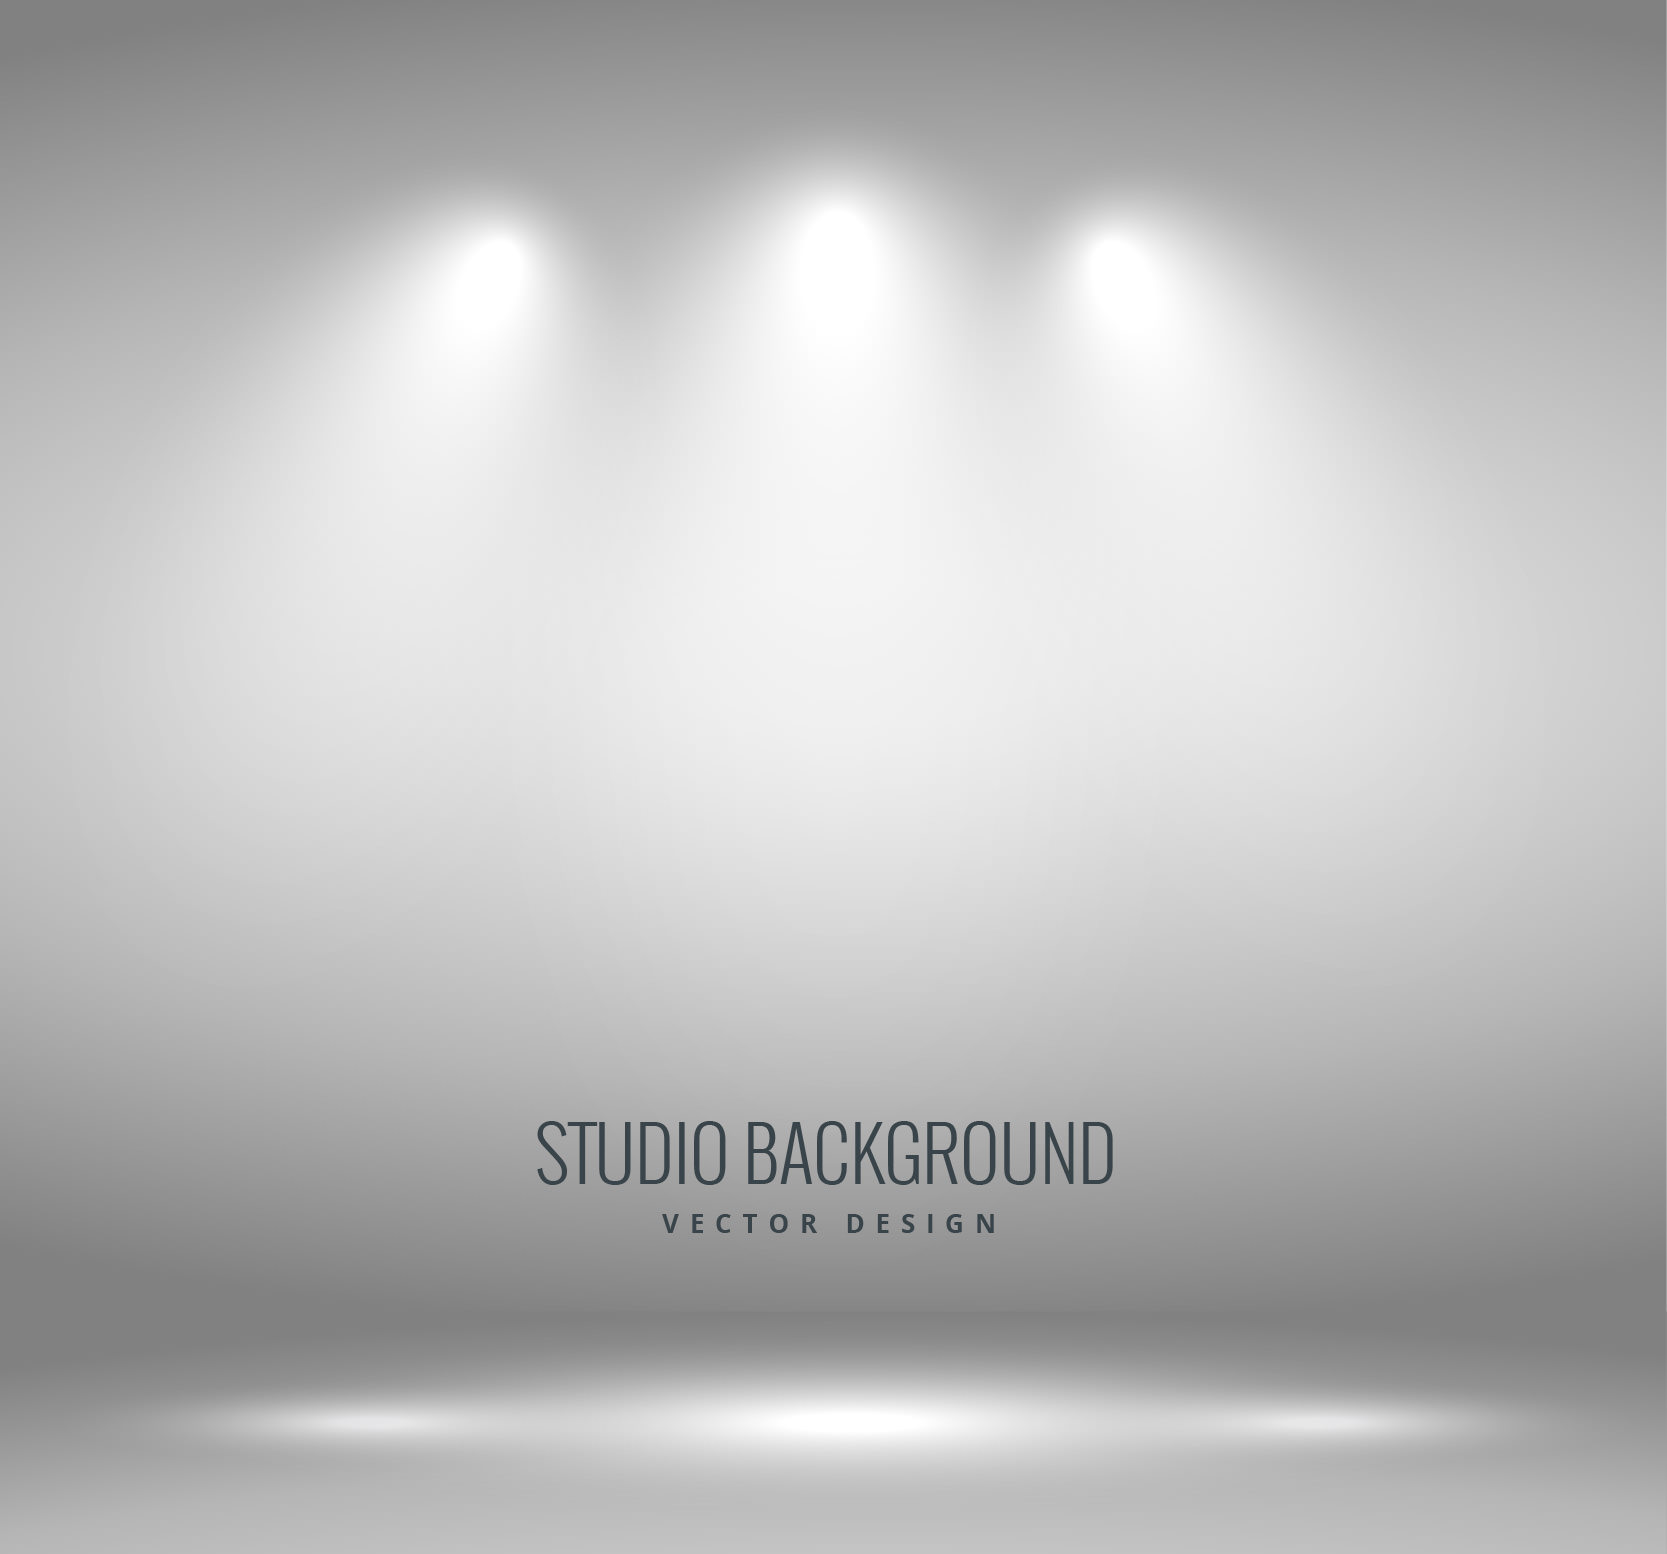 Grey Photography Studio Background Free Vector